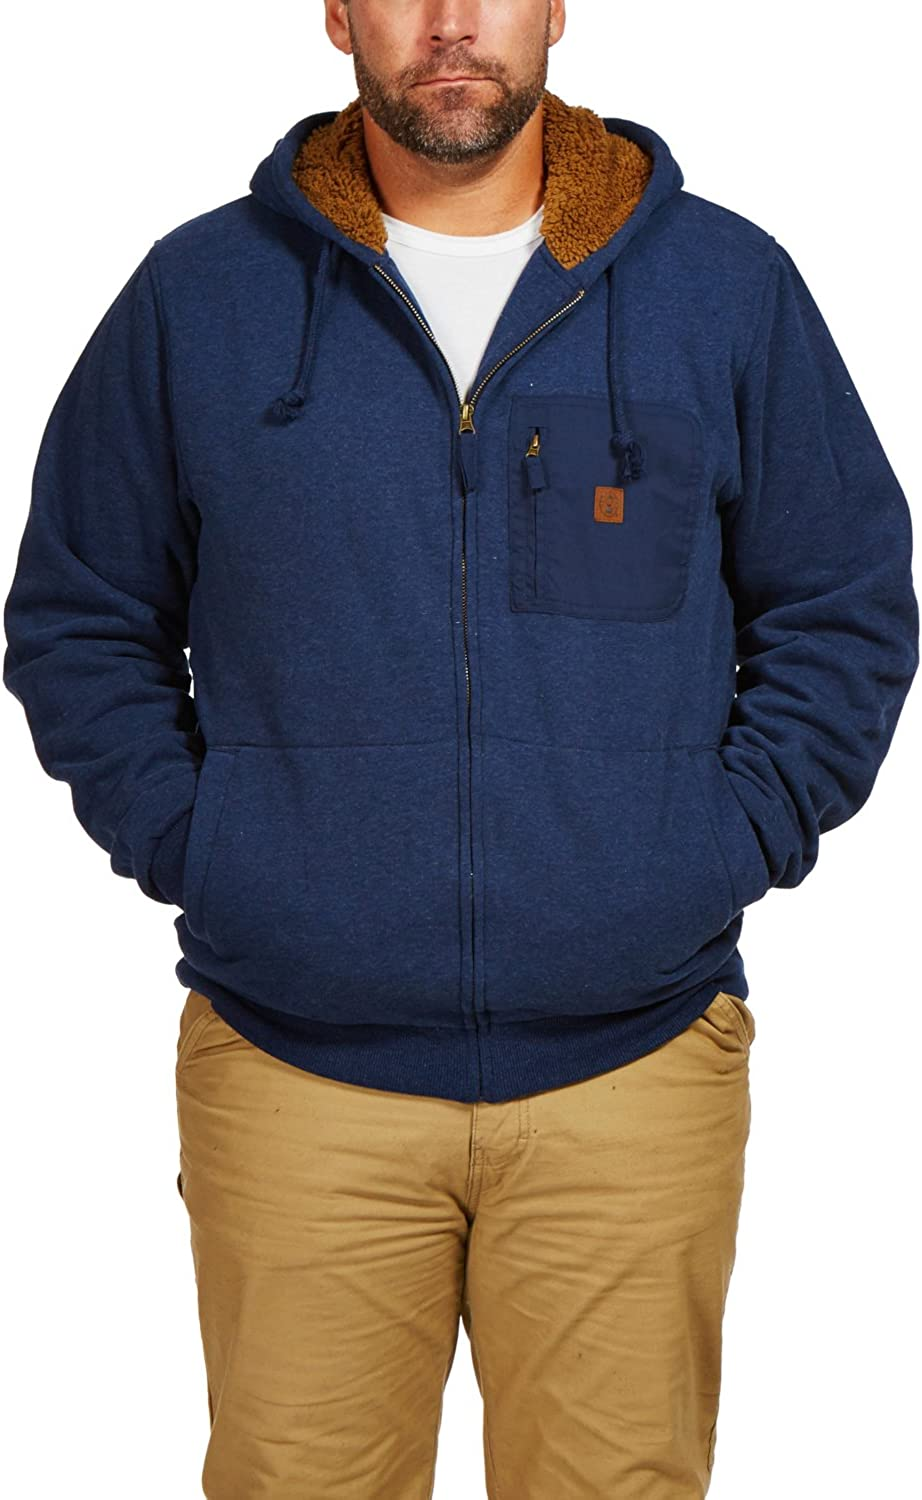 Coleman Sherpa-Lined Hoodie with Zip Chest Pocket